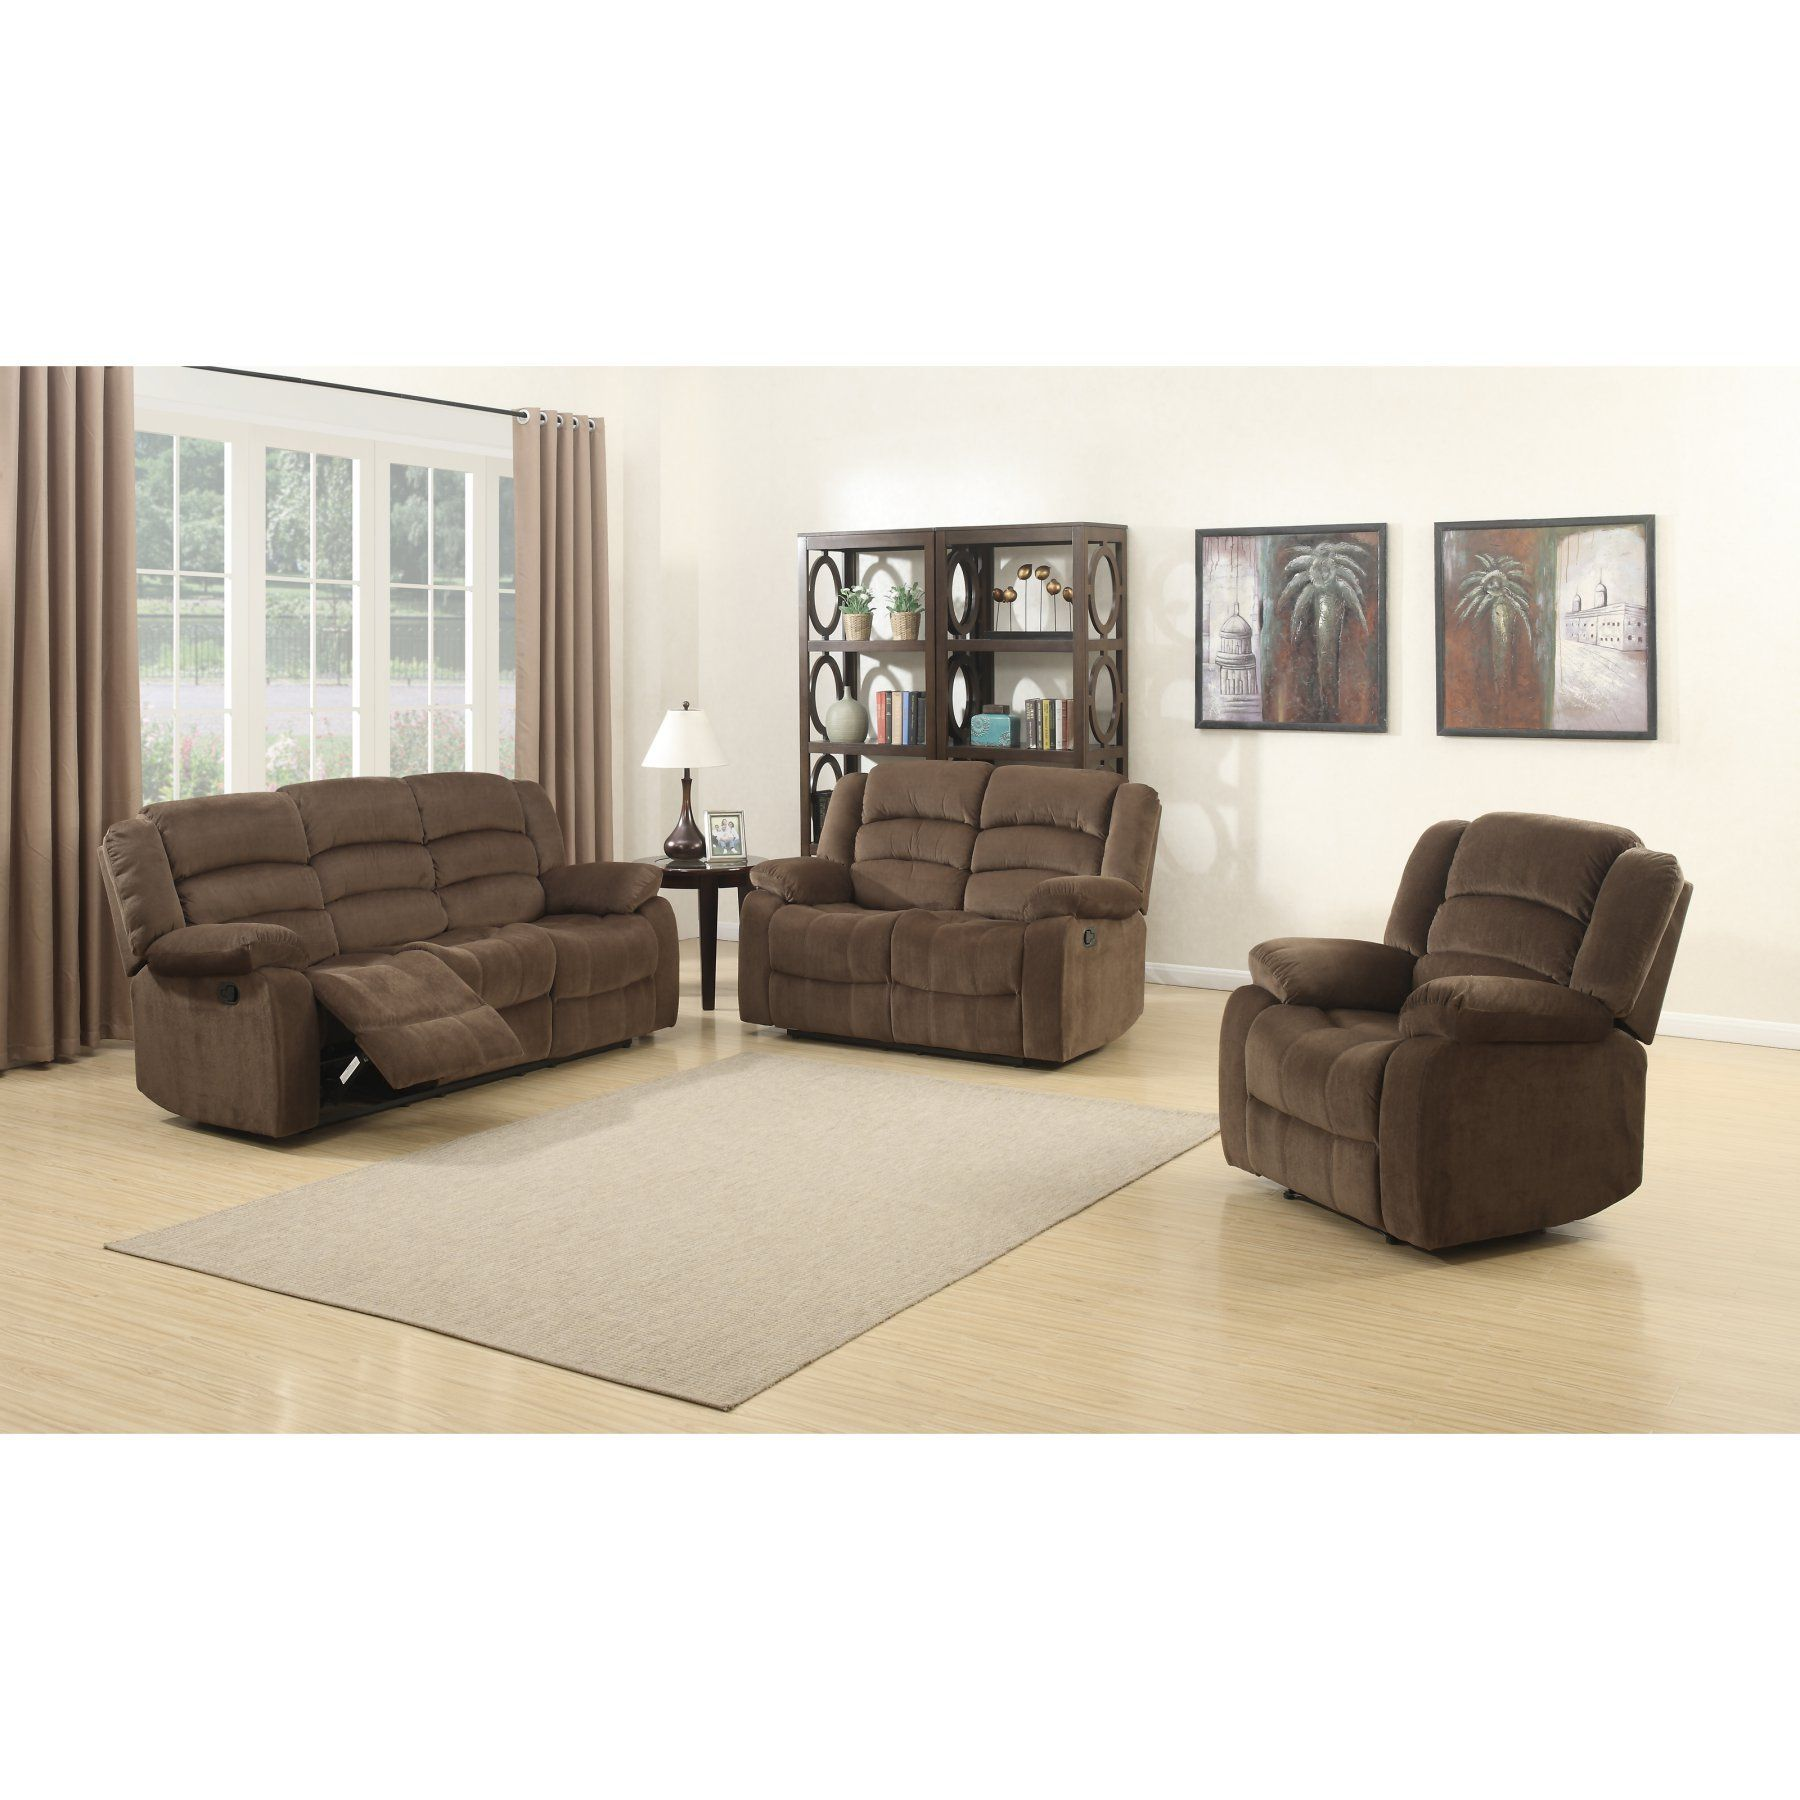 Christies Home Living Bill Collection 3 Piece Living Room Sofa Set ...